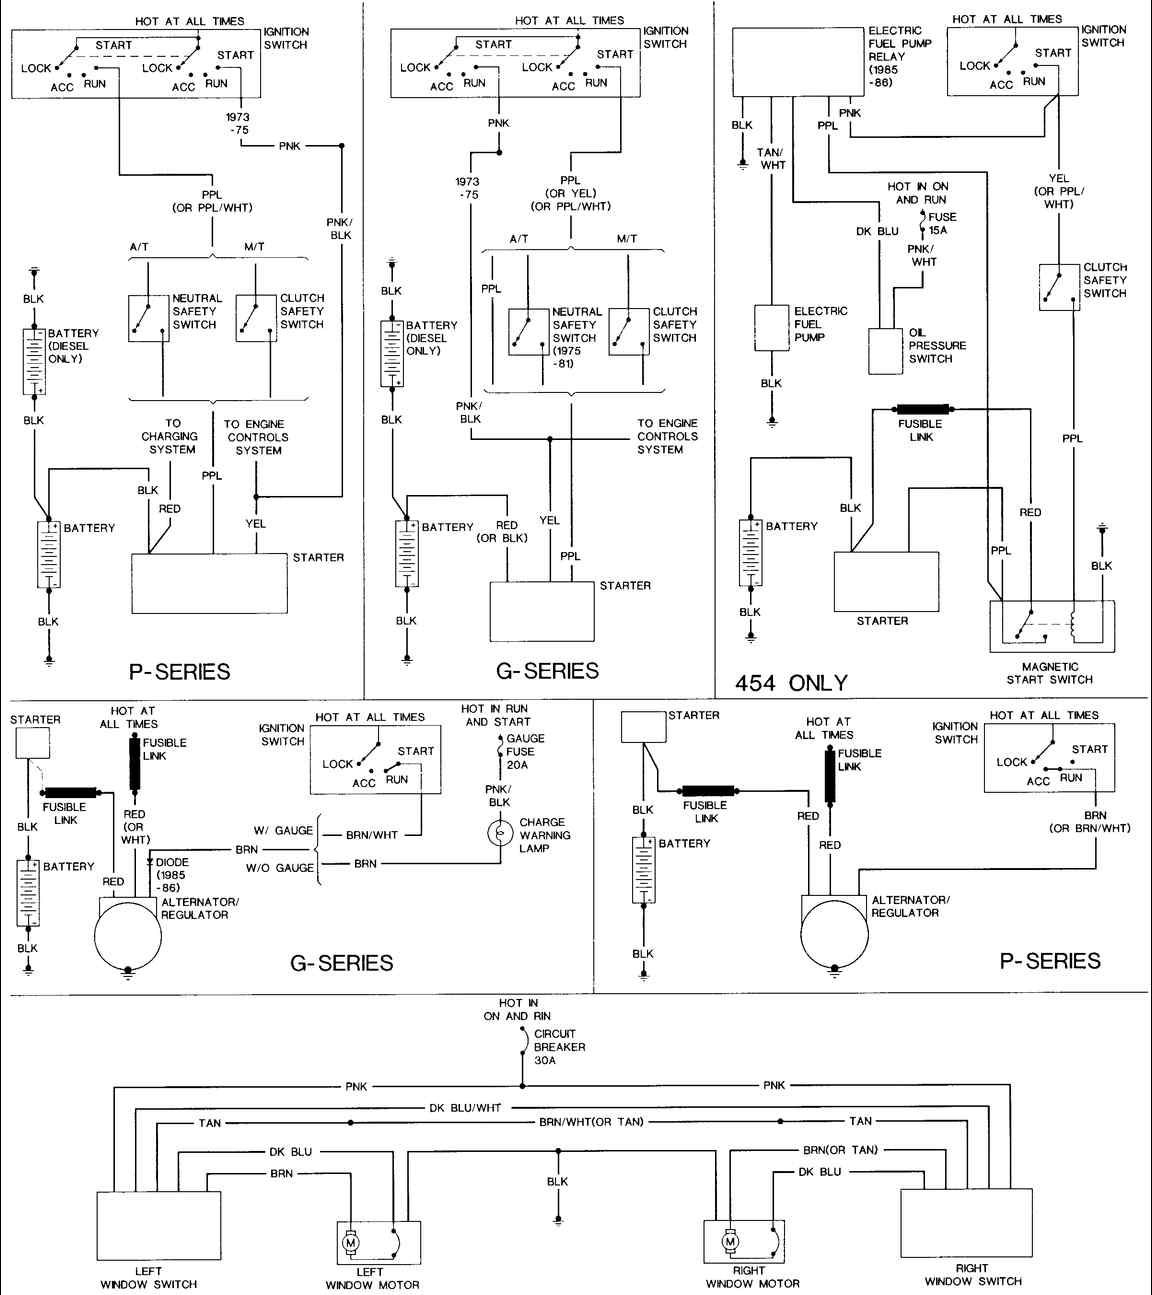 73 Chevy C30 Wiring Diagram Starting Know About 77 Dodge Truck Headlight 85 Van The Steering Column Rh Pinterest Com